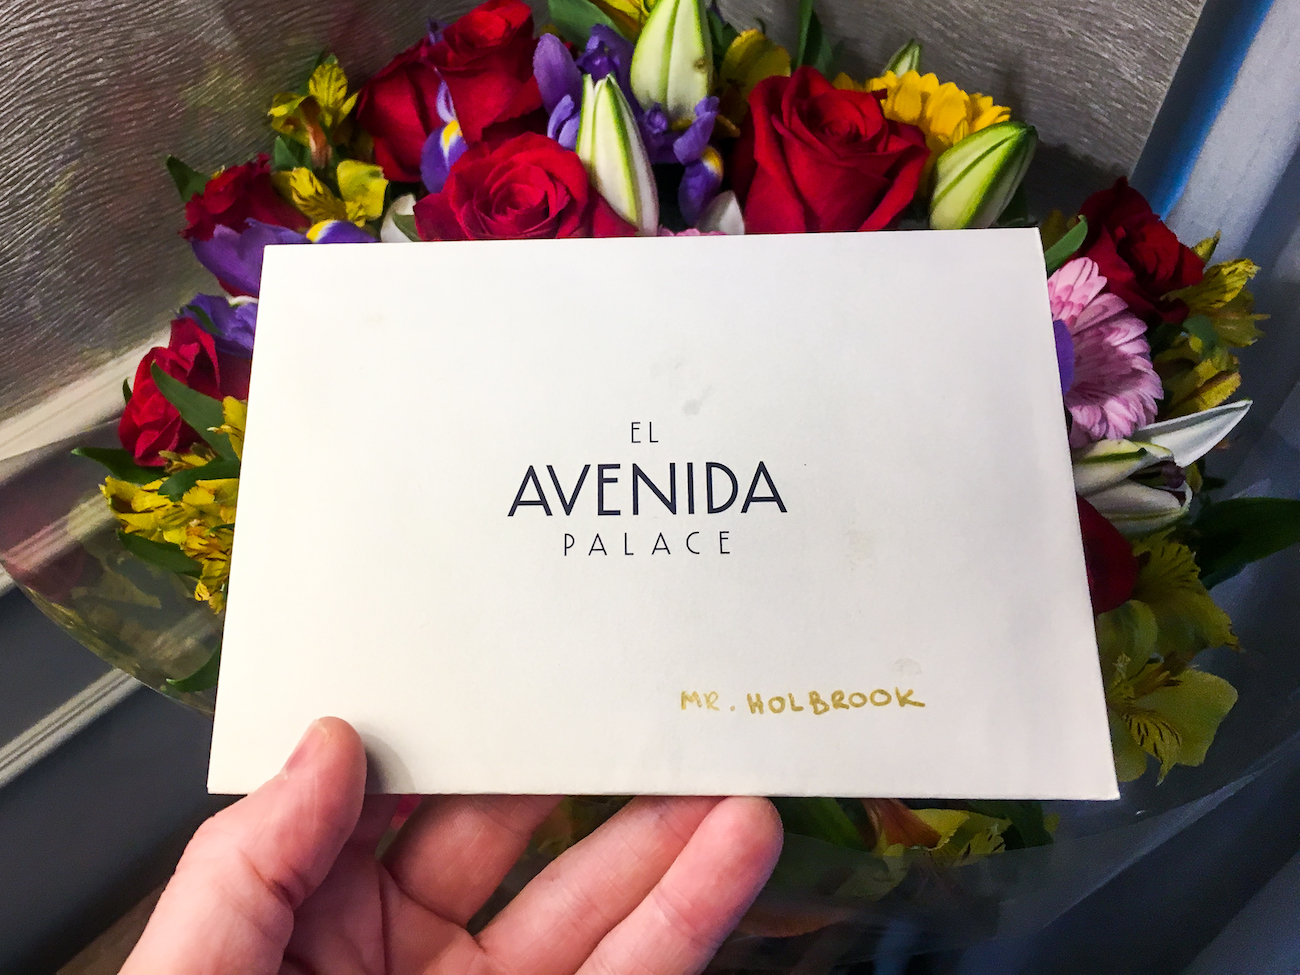 Avenida Palace Hotel Barcelona from Avenida Palace Hotel Review - by Ben Holbrook